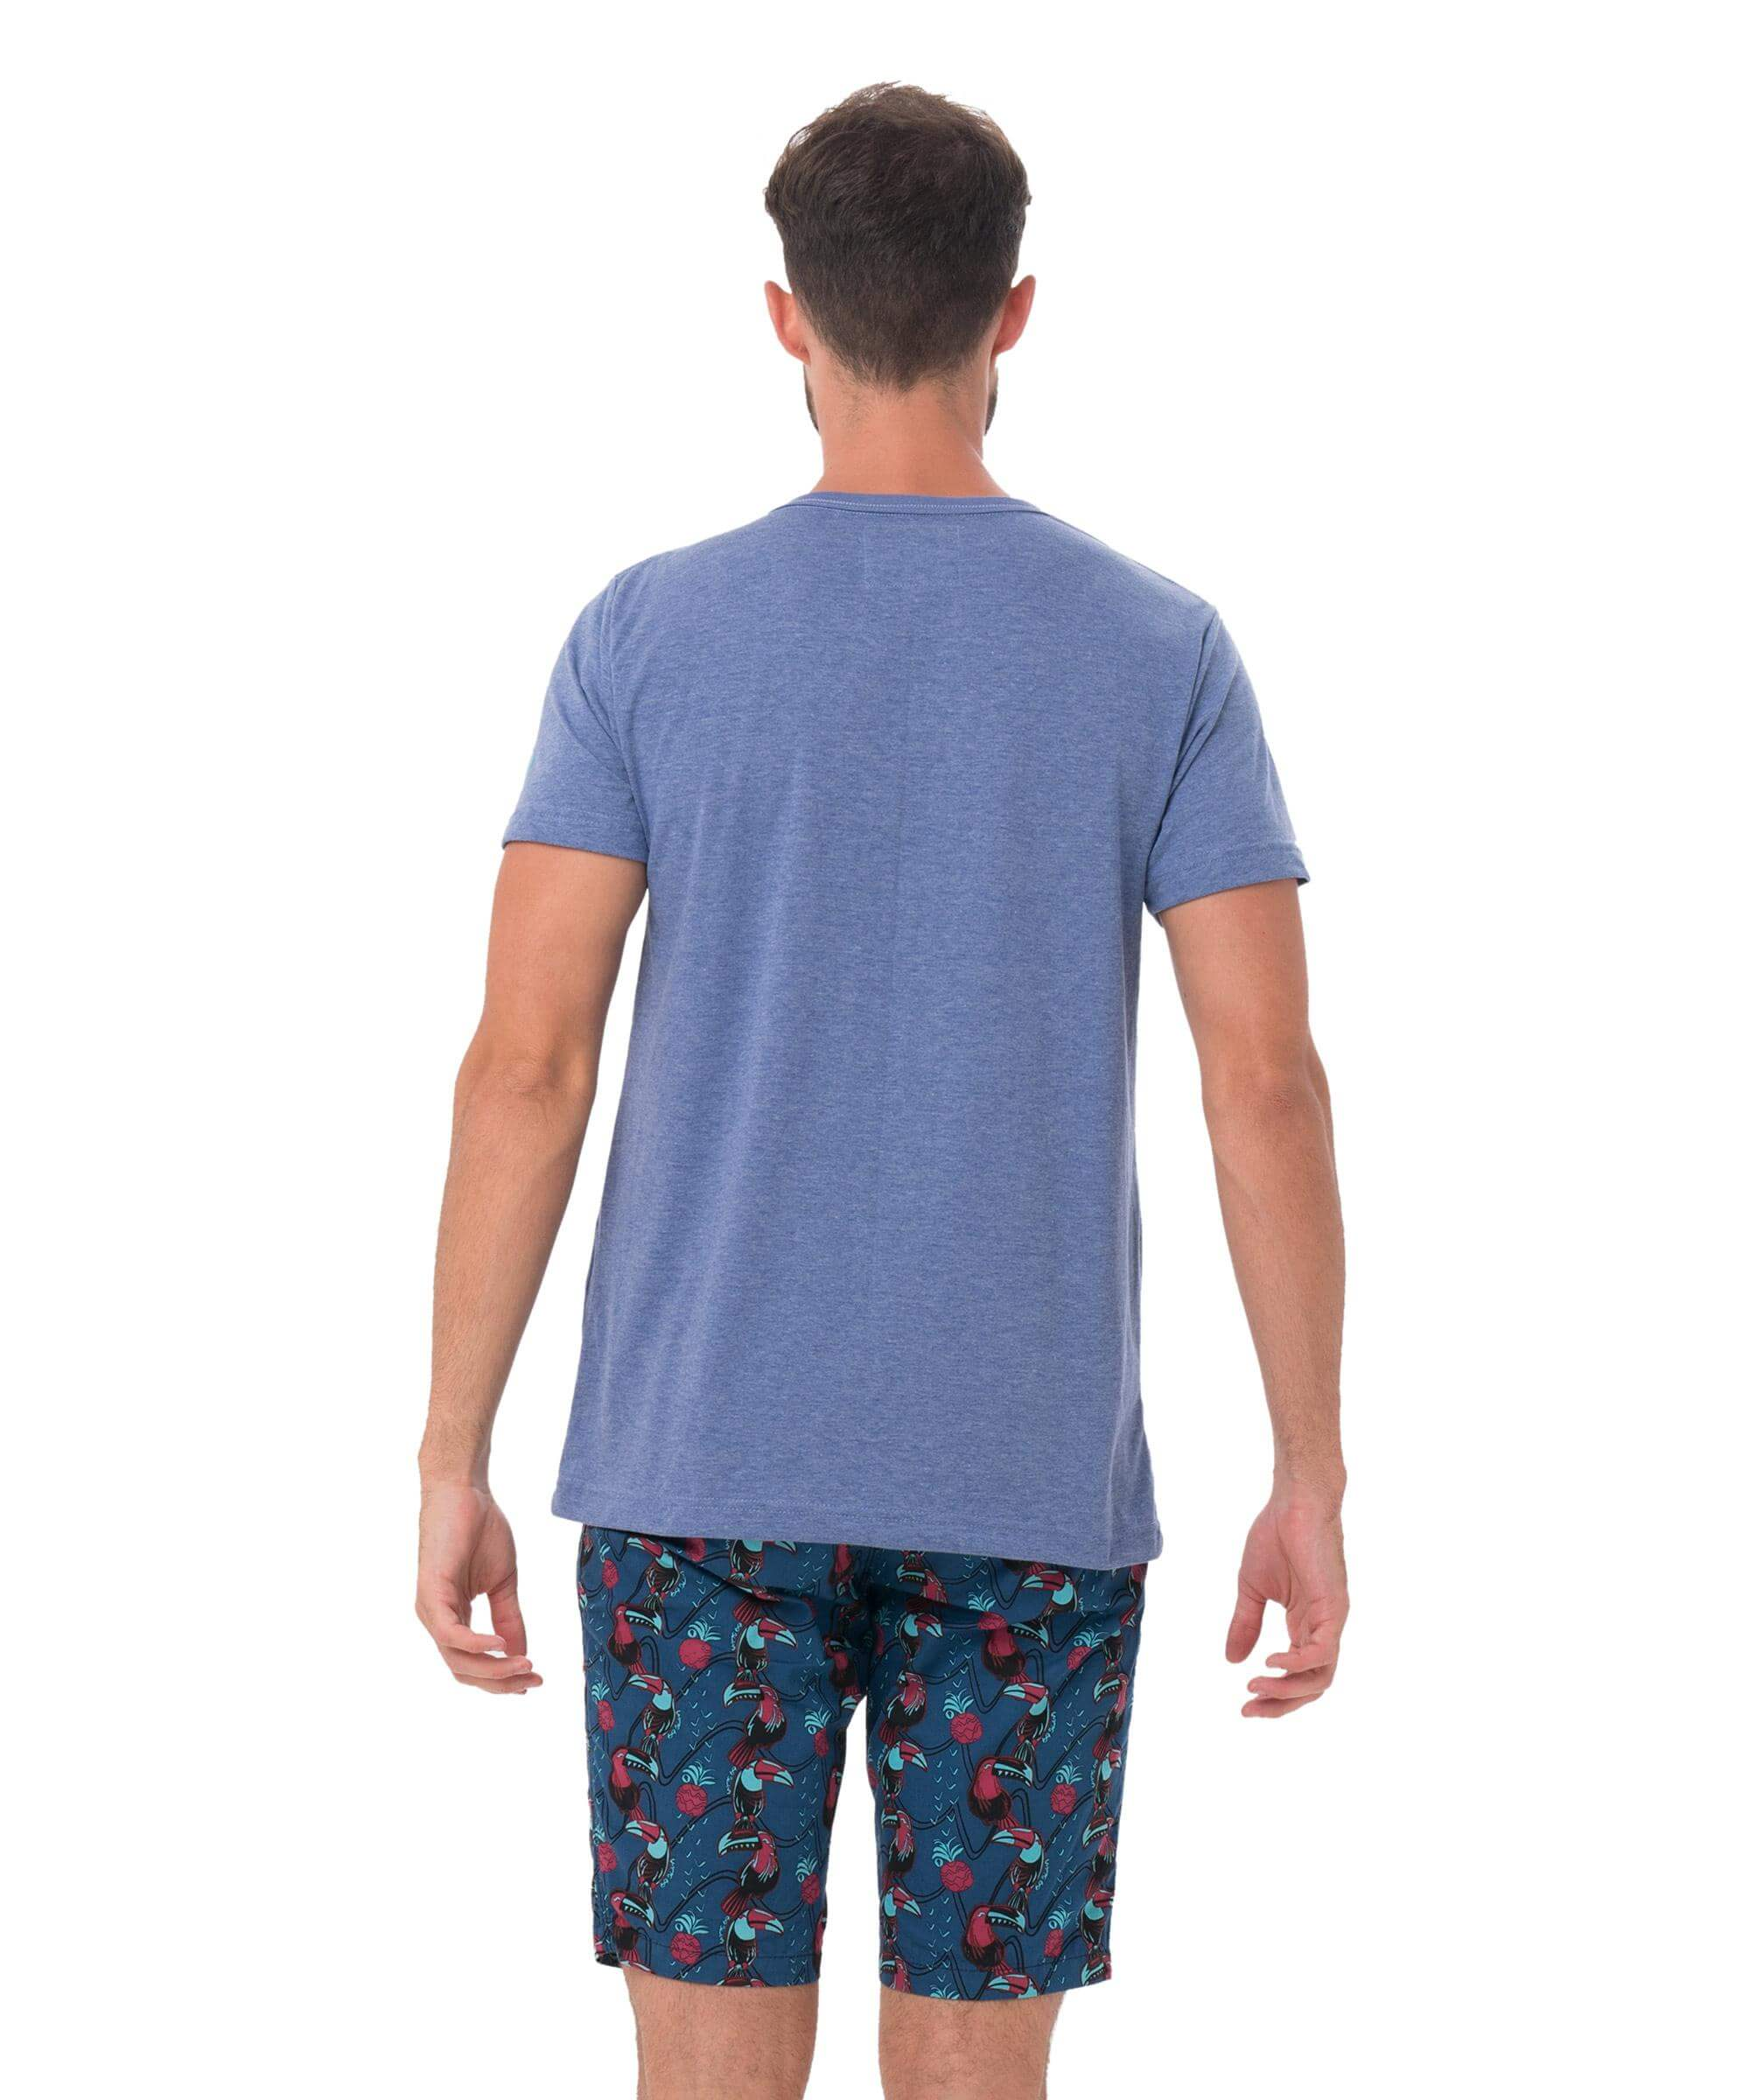 PINE SKULL BLUE BE DIFFERENT COLLECTION SHORT SLEEVES T-SHIRT